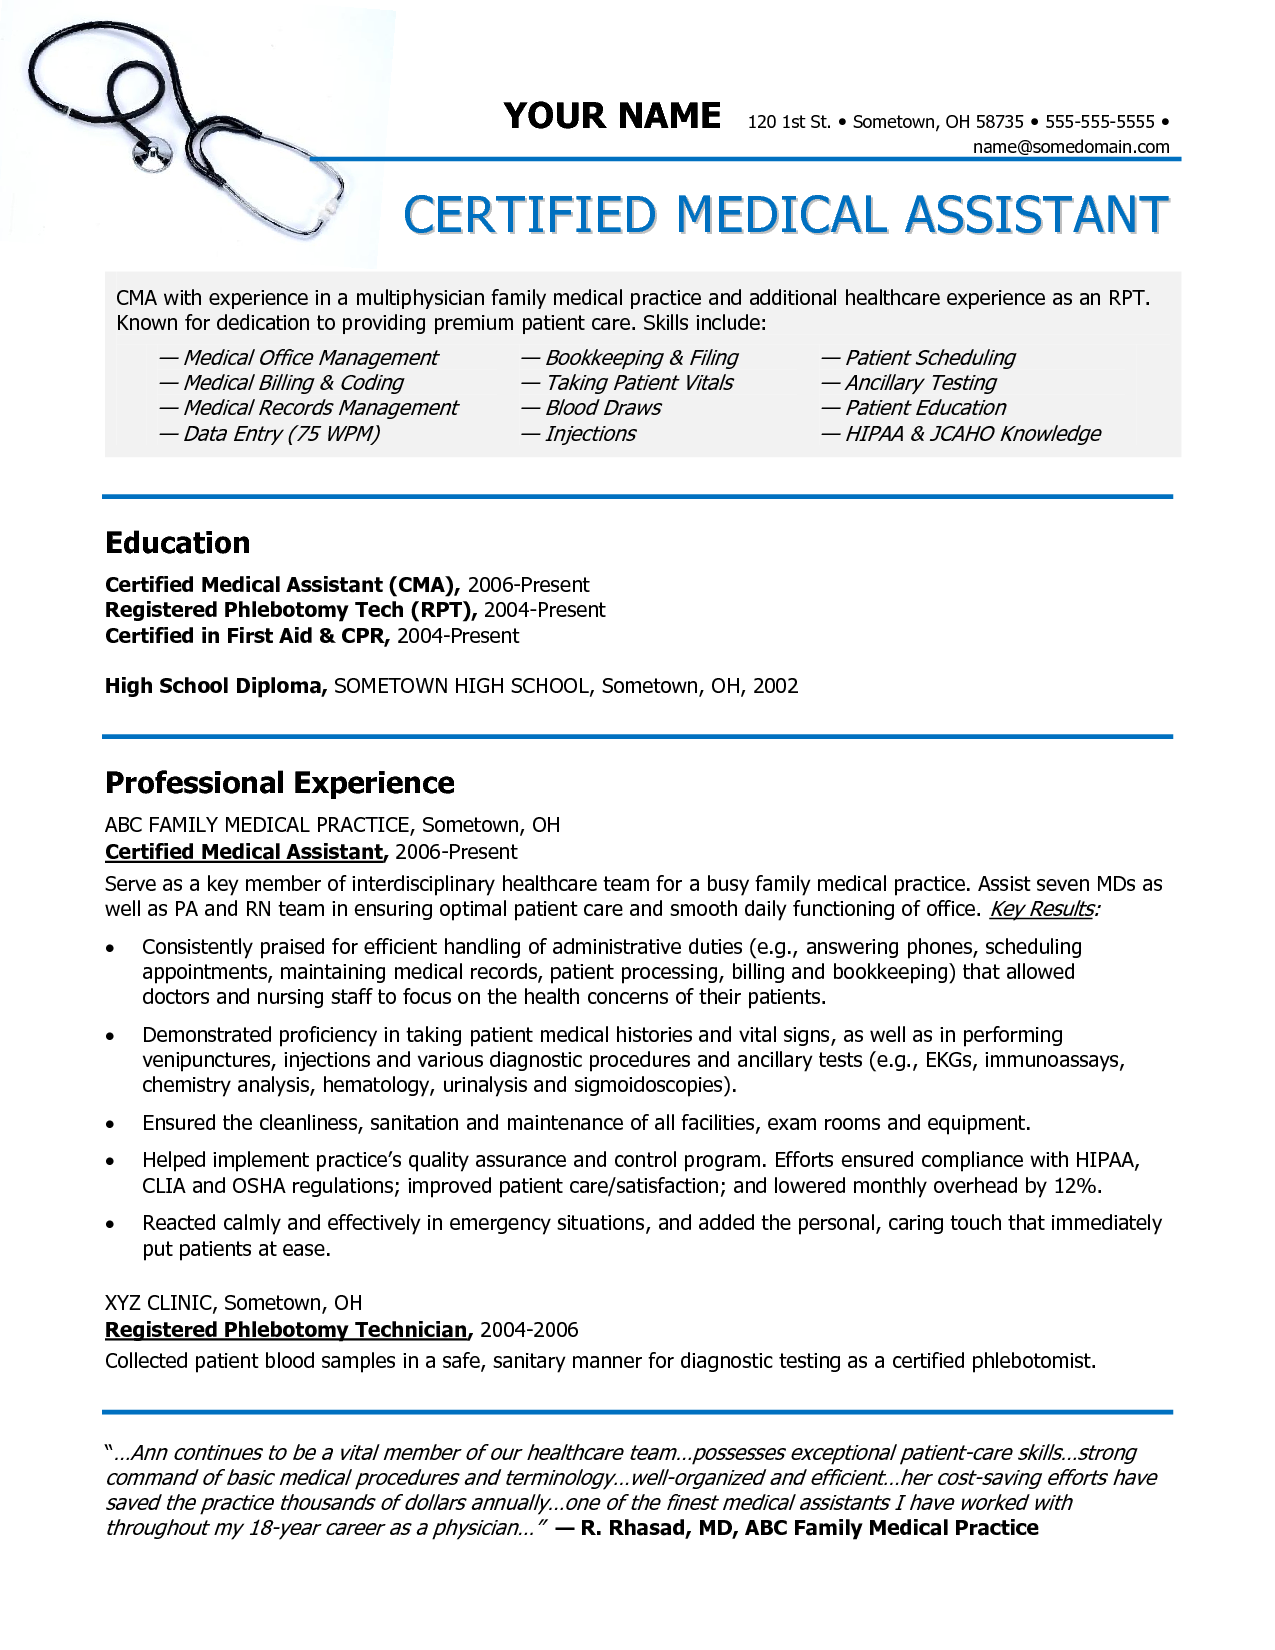 Medical Assistant Resume Entry Level Examples 18 Medical Assistant .  Medical Resumes Examples